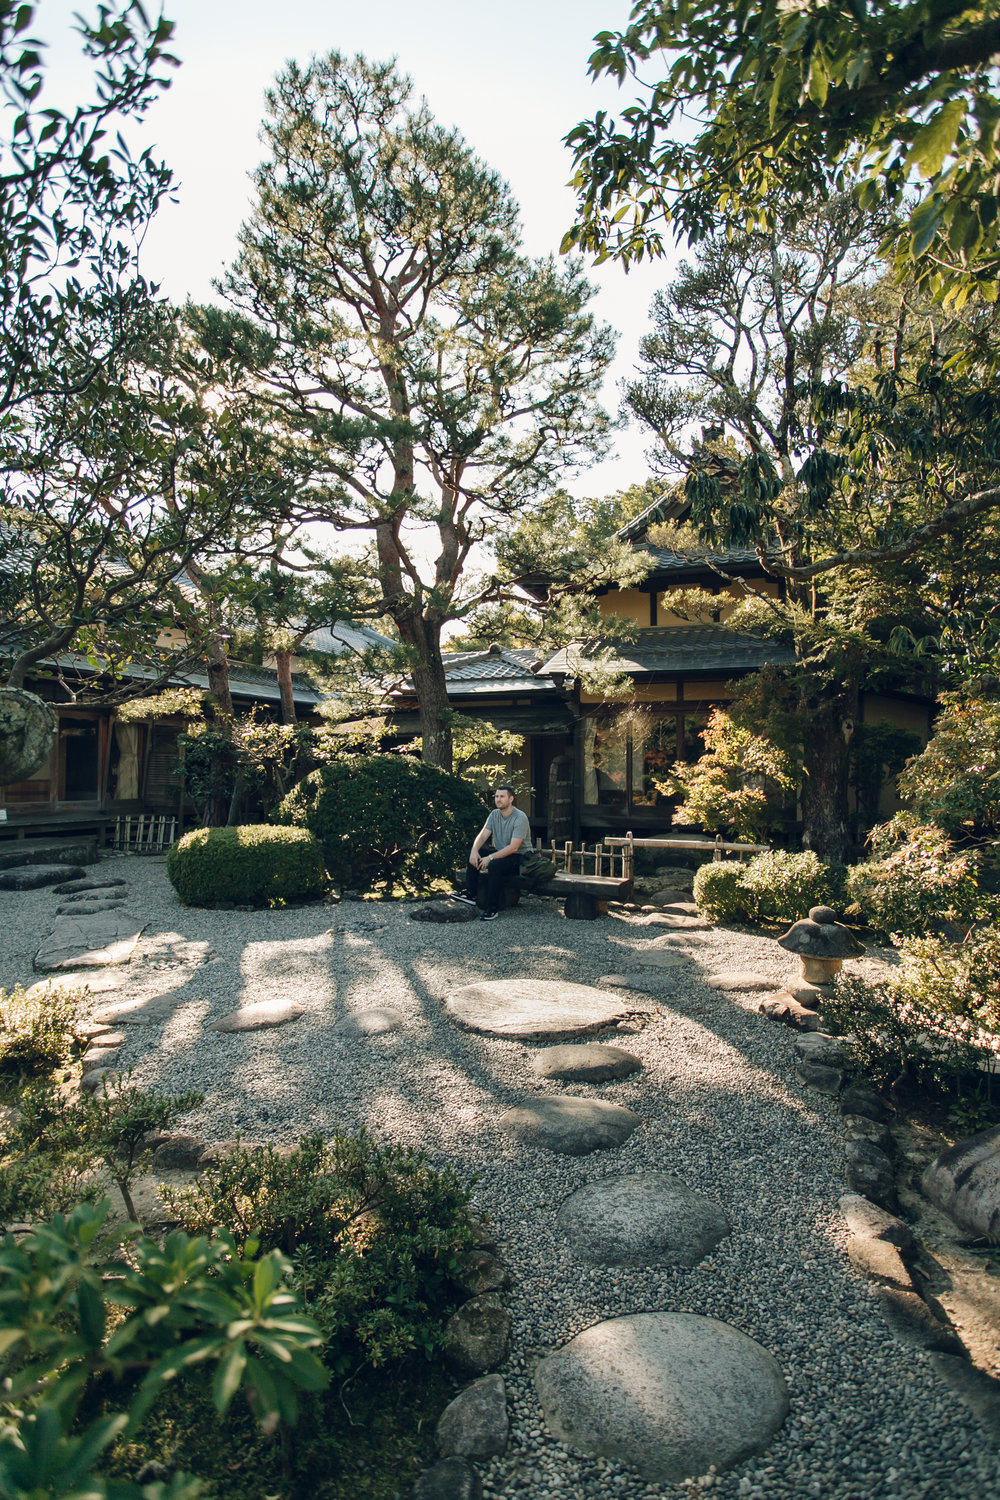 Yoshiki-en Garden in Nara - Haarkon in Japan.